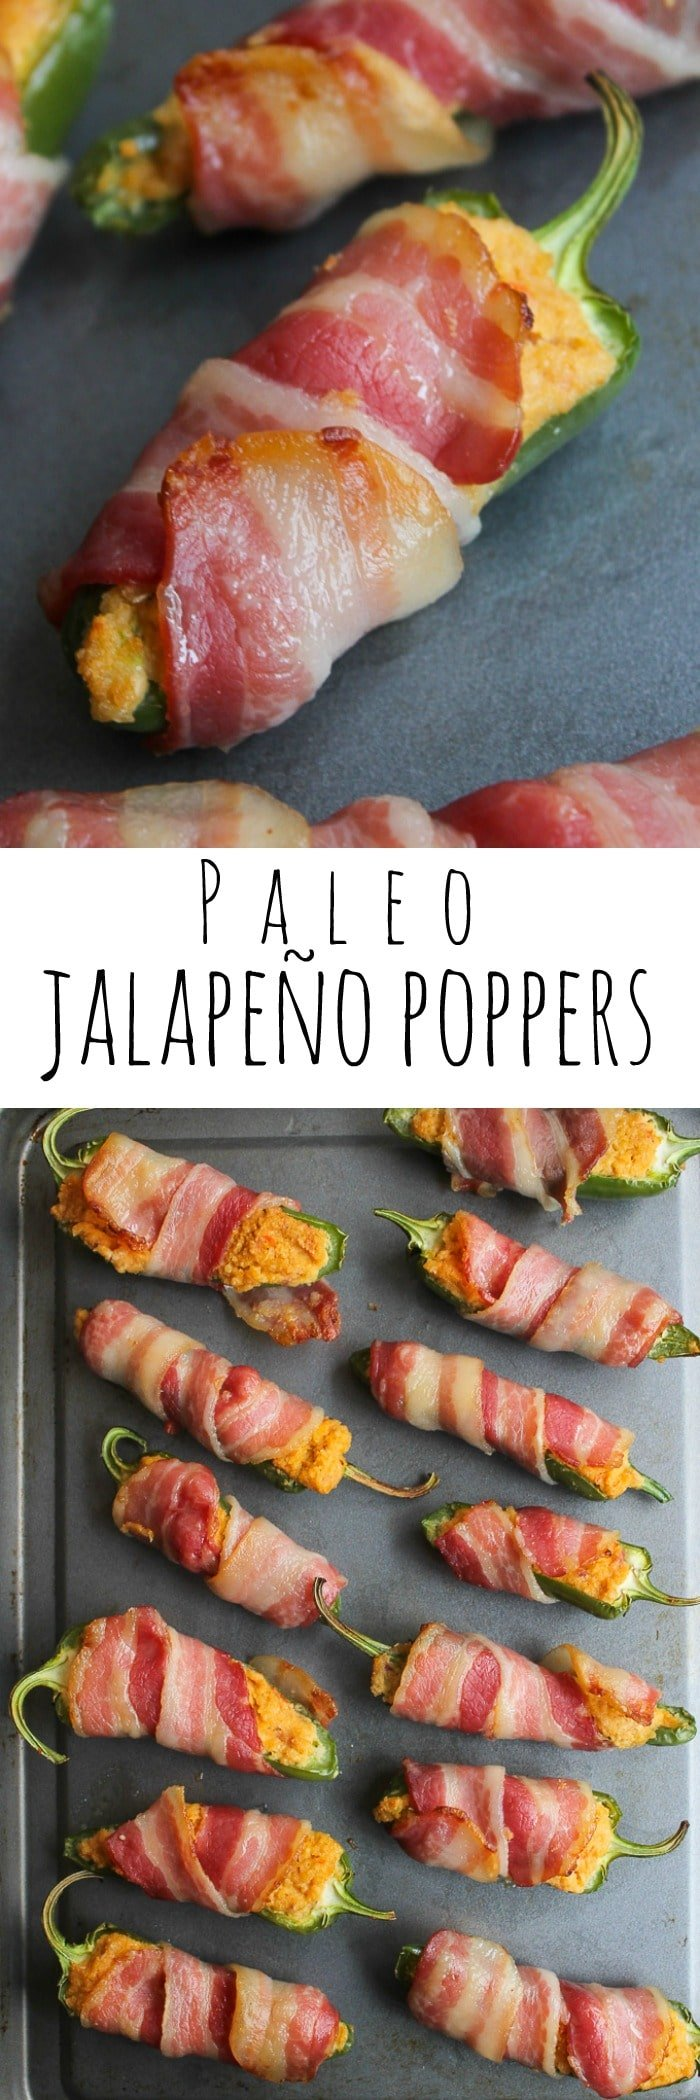 Paleo Jalapeño Poppers made with a cashew cream